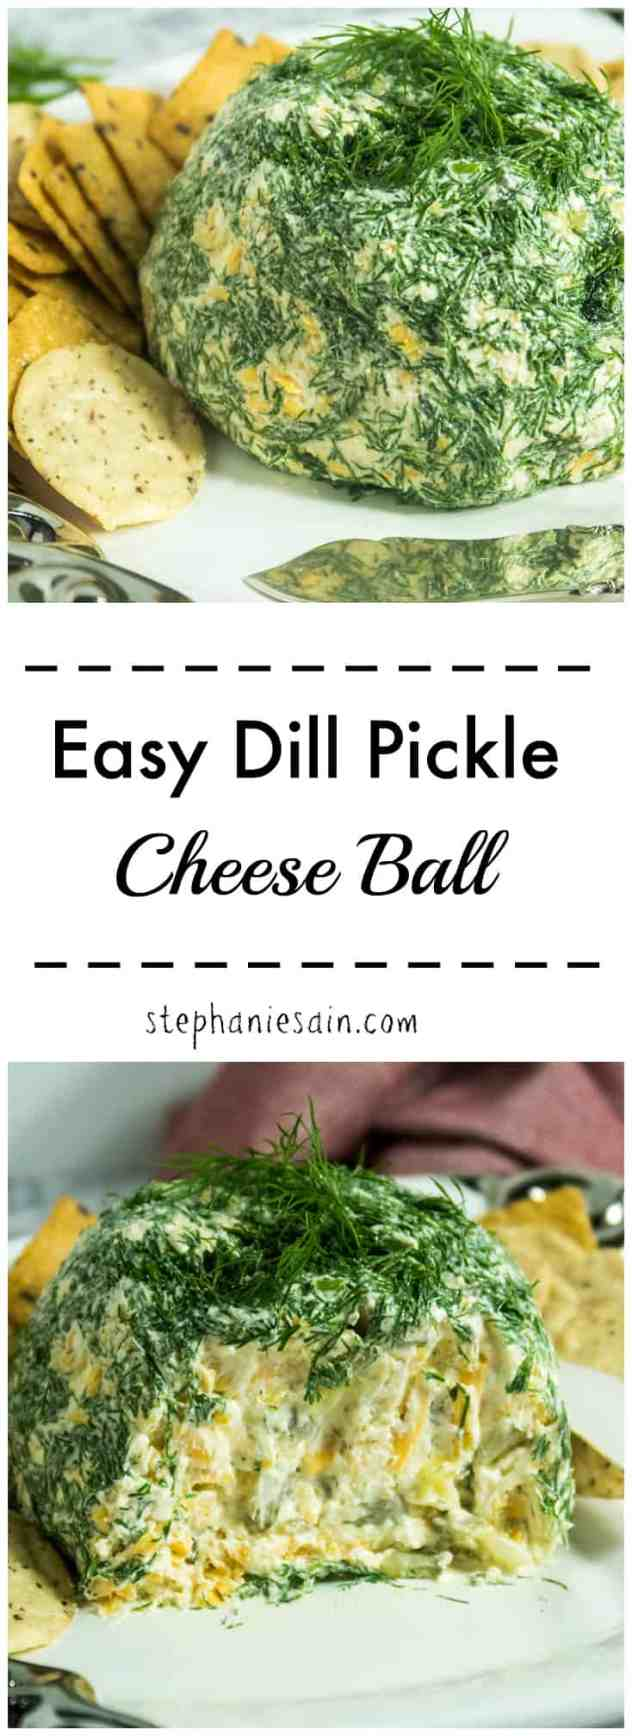 Easy Dill Pickle Cheese Ball is perfect for entertaining and gatherings. Can easily be made ahead quickly for a perfect last minute appetizer. Gluten Free & Vegetarian.